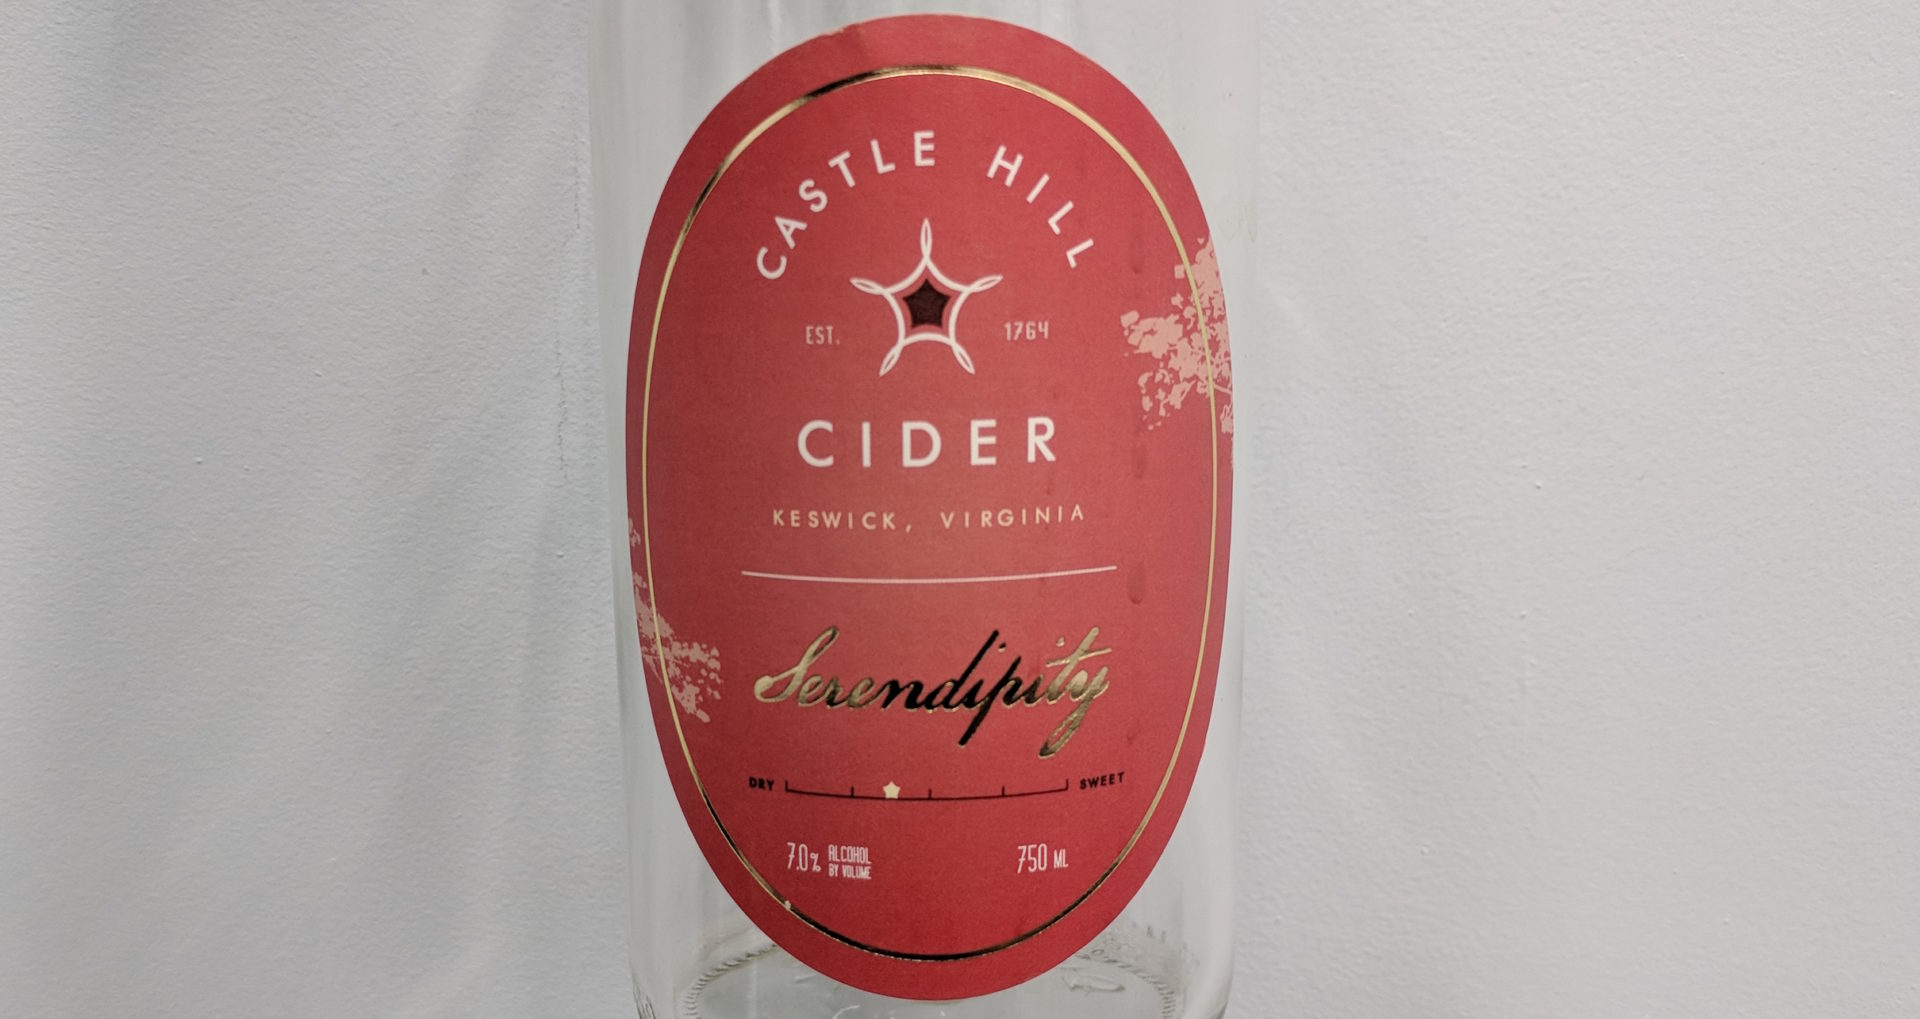 Castle Hill Cider Serendipity